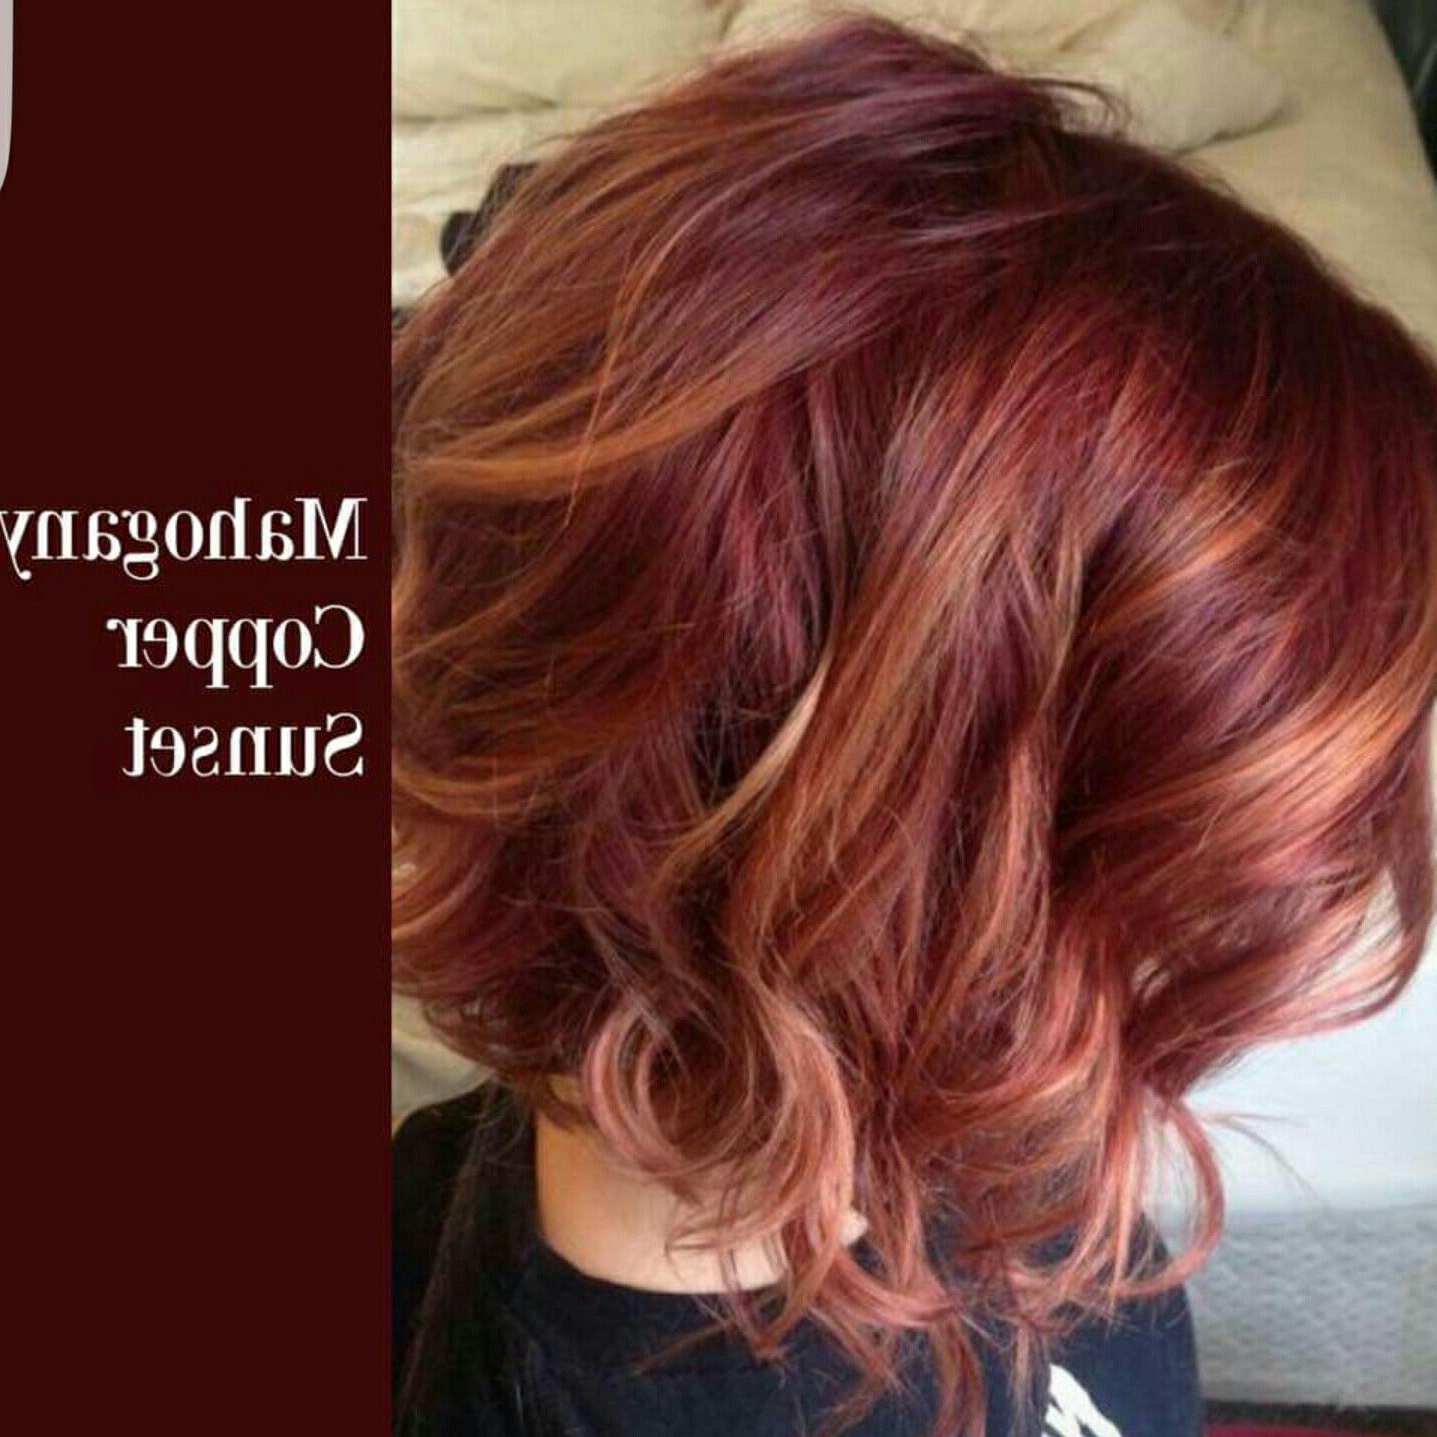 Mahogany Copper Sunset | Hair Ideas In 2018 | Pinterest | Hair, Hair With Burgundy And Tangerine Piecey Bob Hairstyles (View 16 of 20)